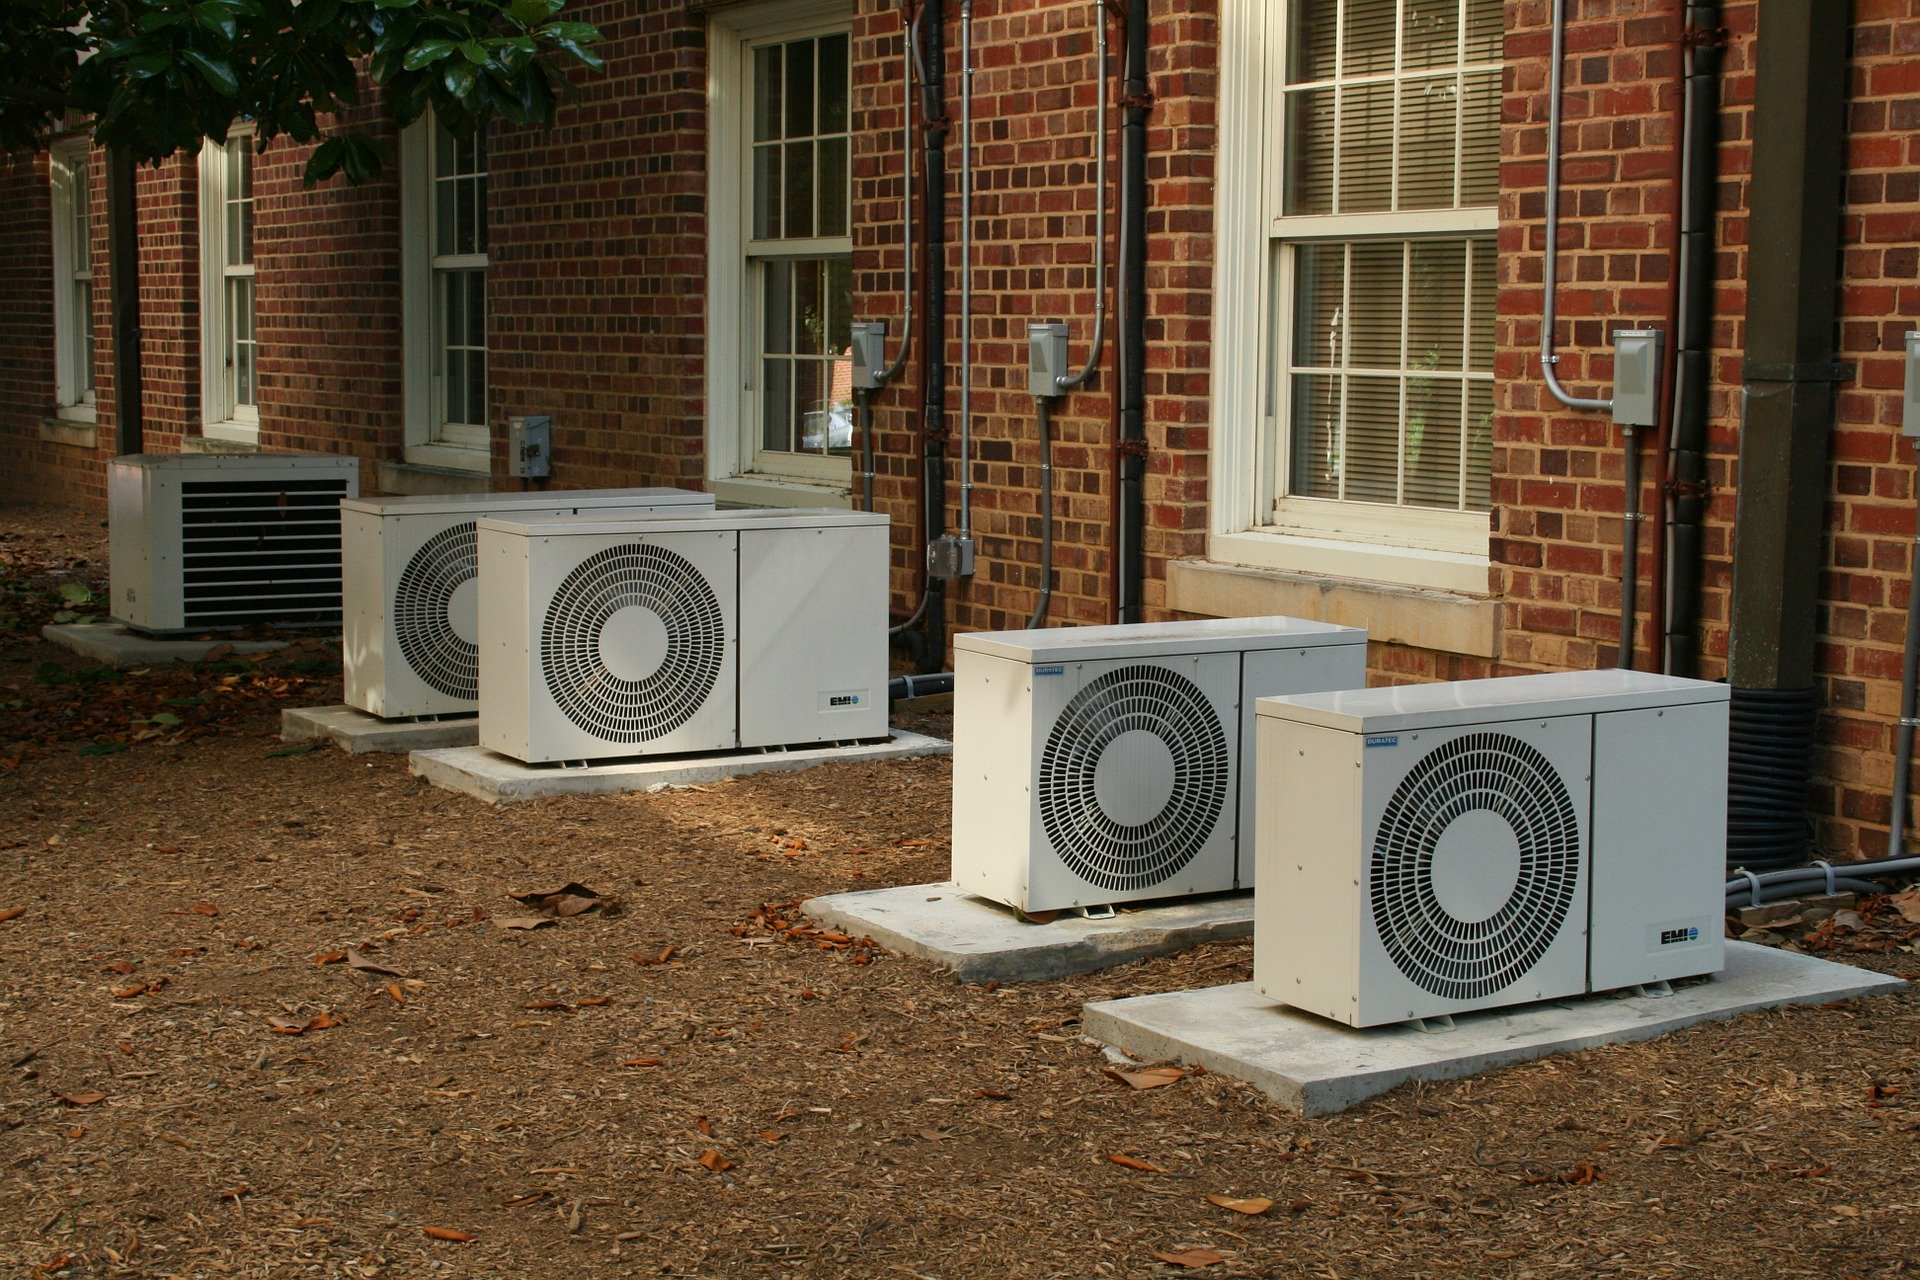 a picture showing air conditioning units